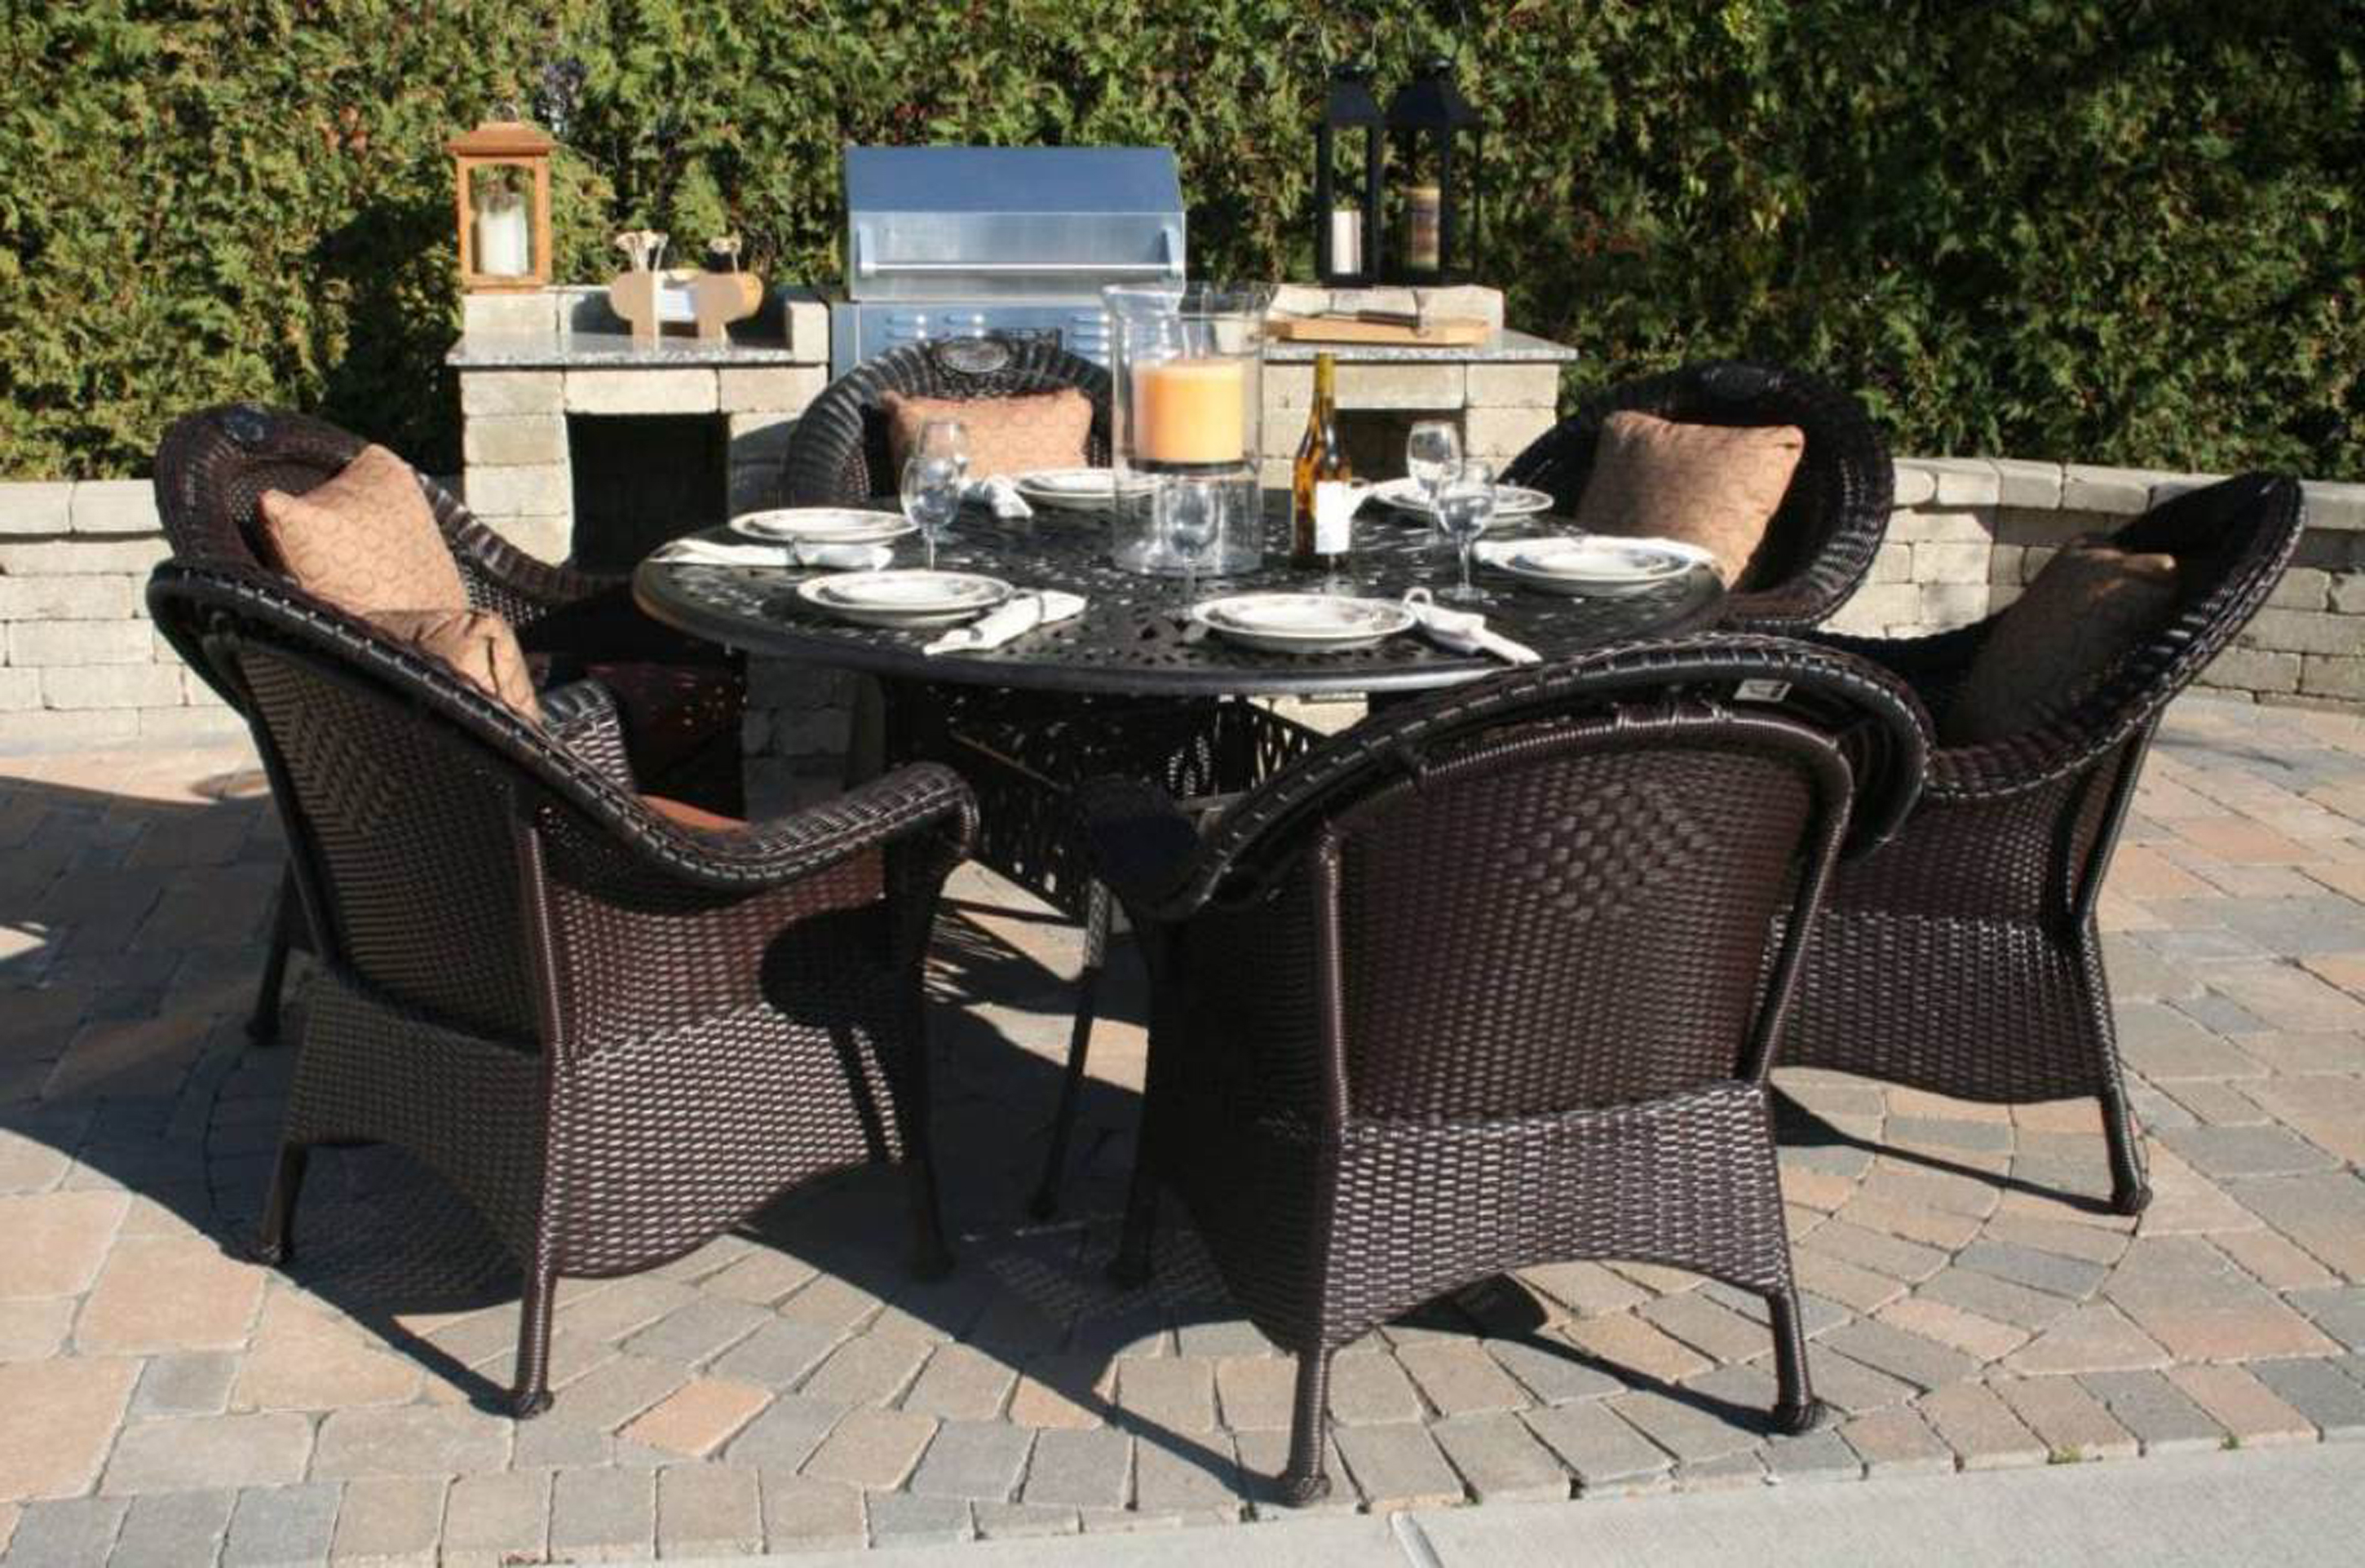 Amazing Outdoor Dining Set Idea With Round Black Table With Cream Candle White Plates And Black Chairs With Light Brown Cushions Admirable Outdoor Dining Set Ideas (View 25 of 28)